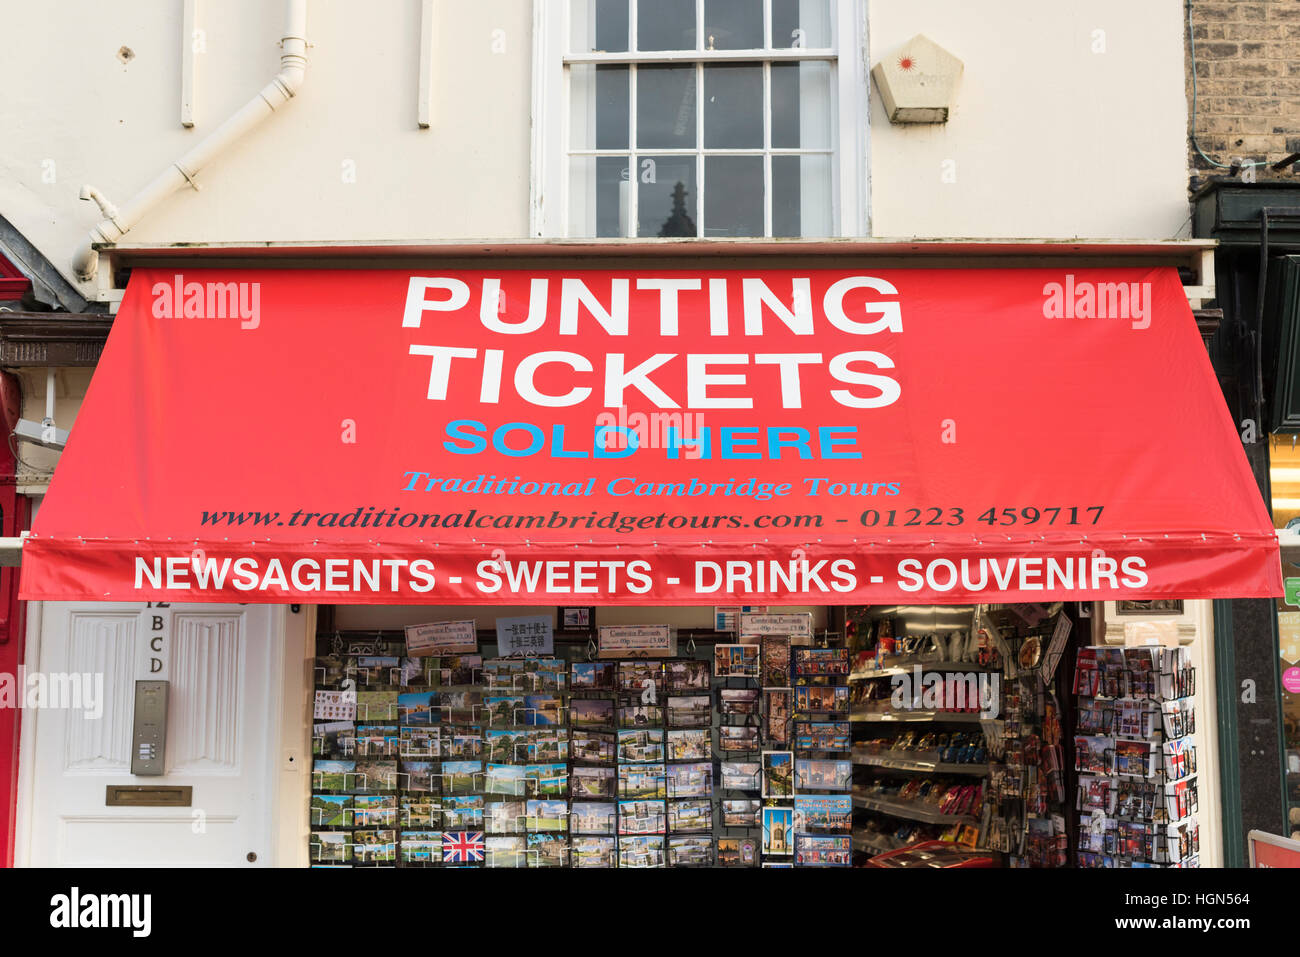 An advert for punting tickets on an awning over a shop in King's Parade Cambridge UK - Stock Image